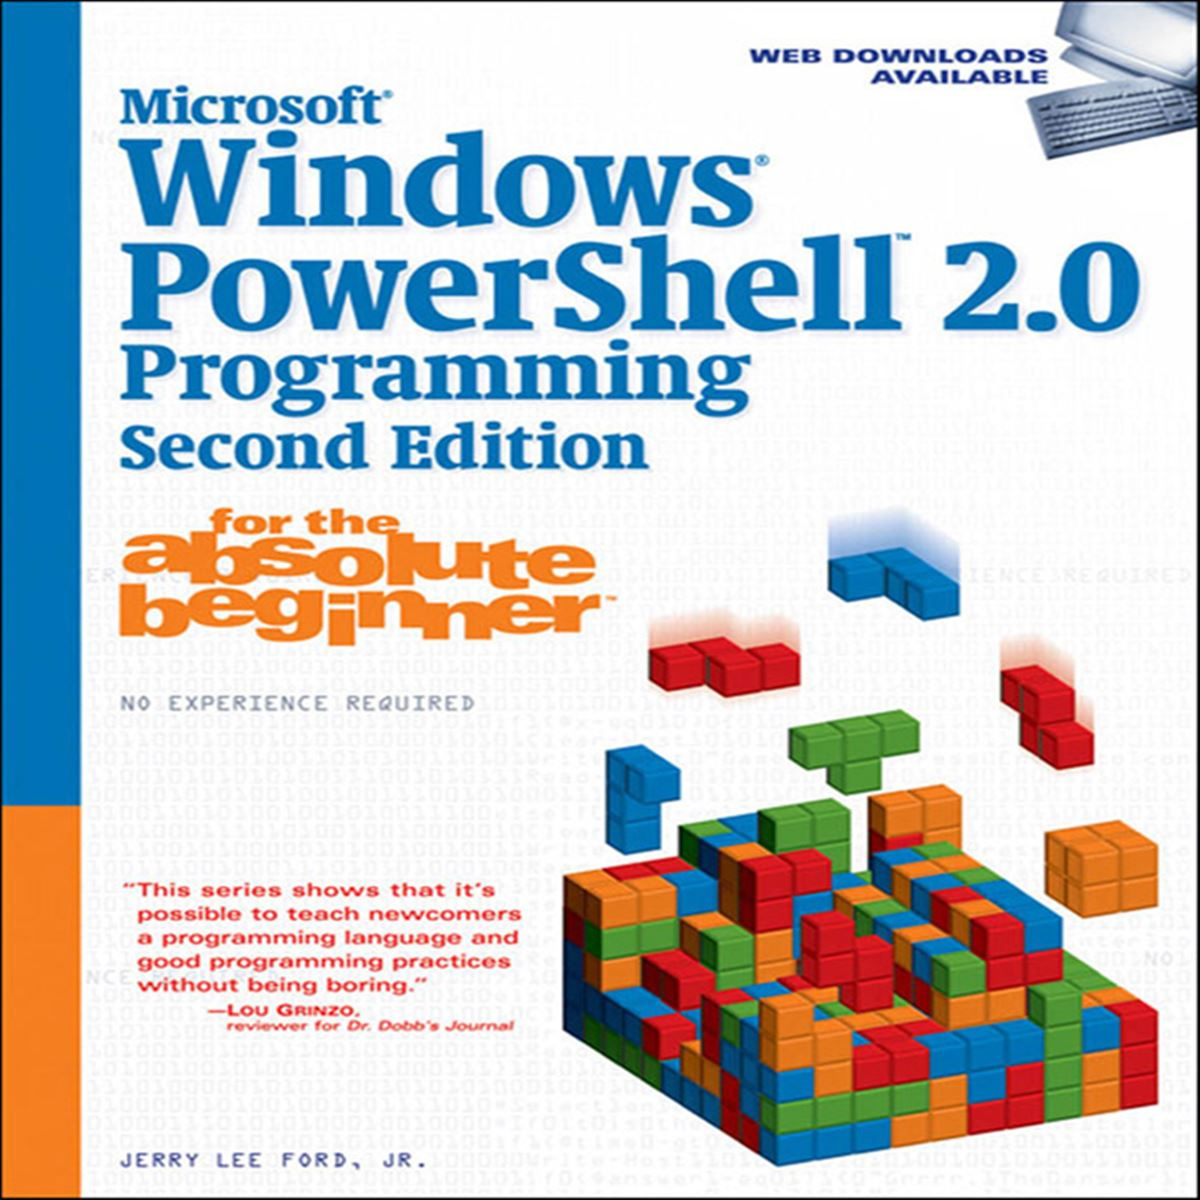 Microsoft® Windows® PowerShell 2.0 Programming for the Absolute Beginner